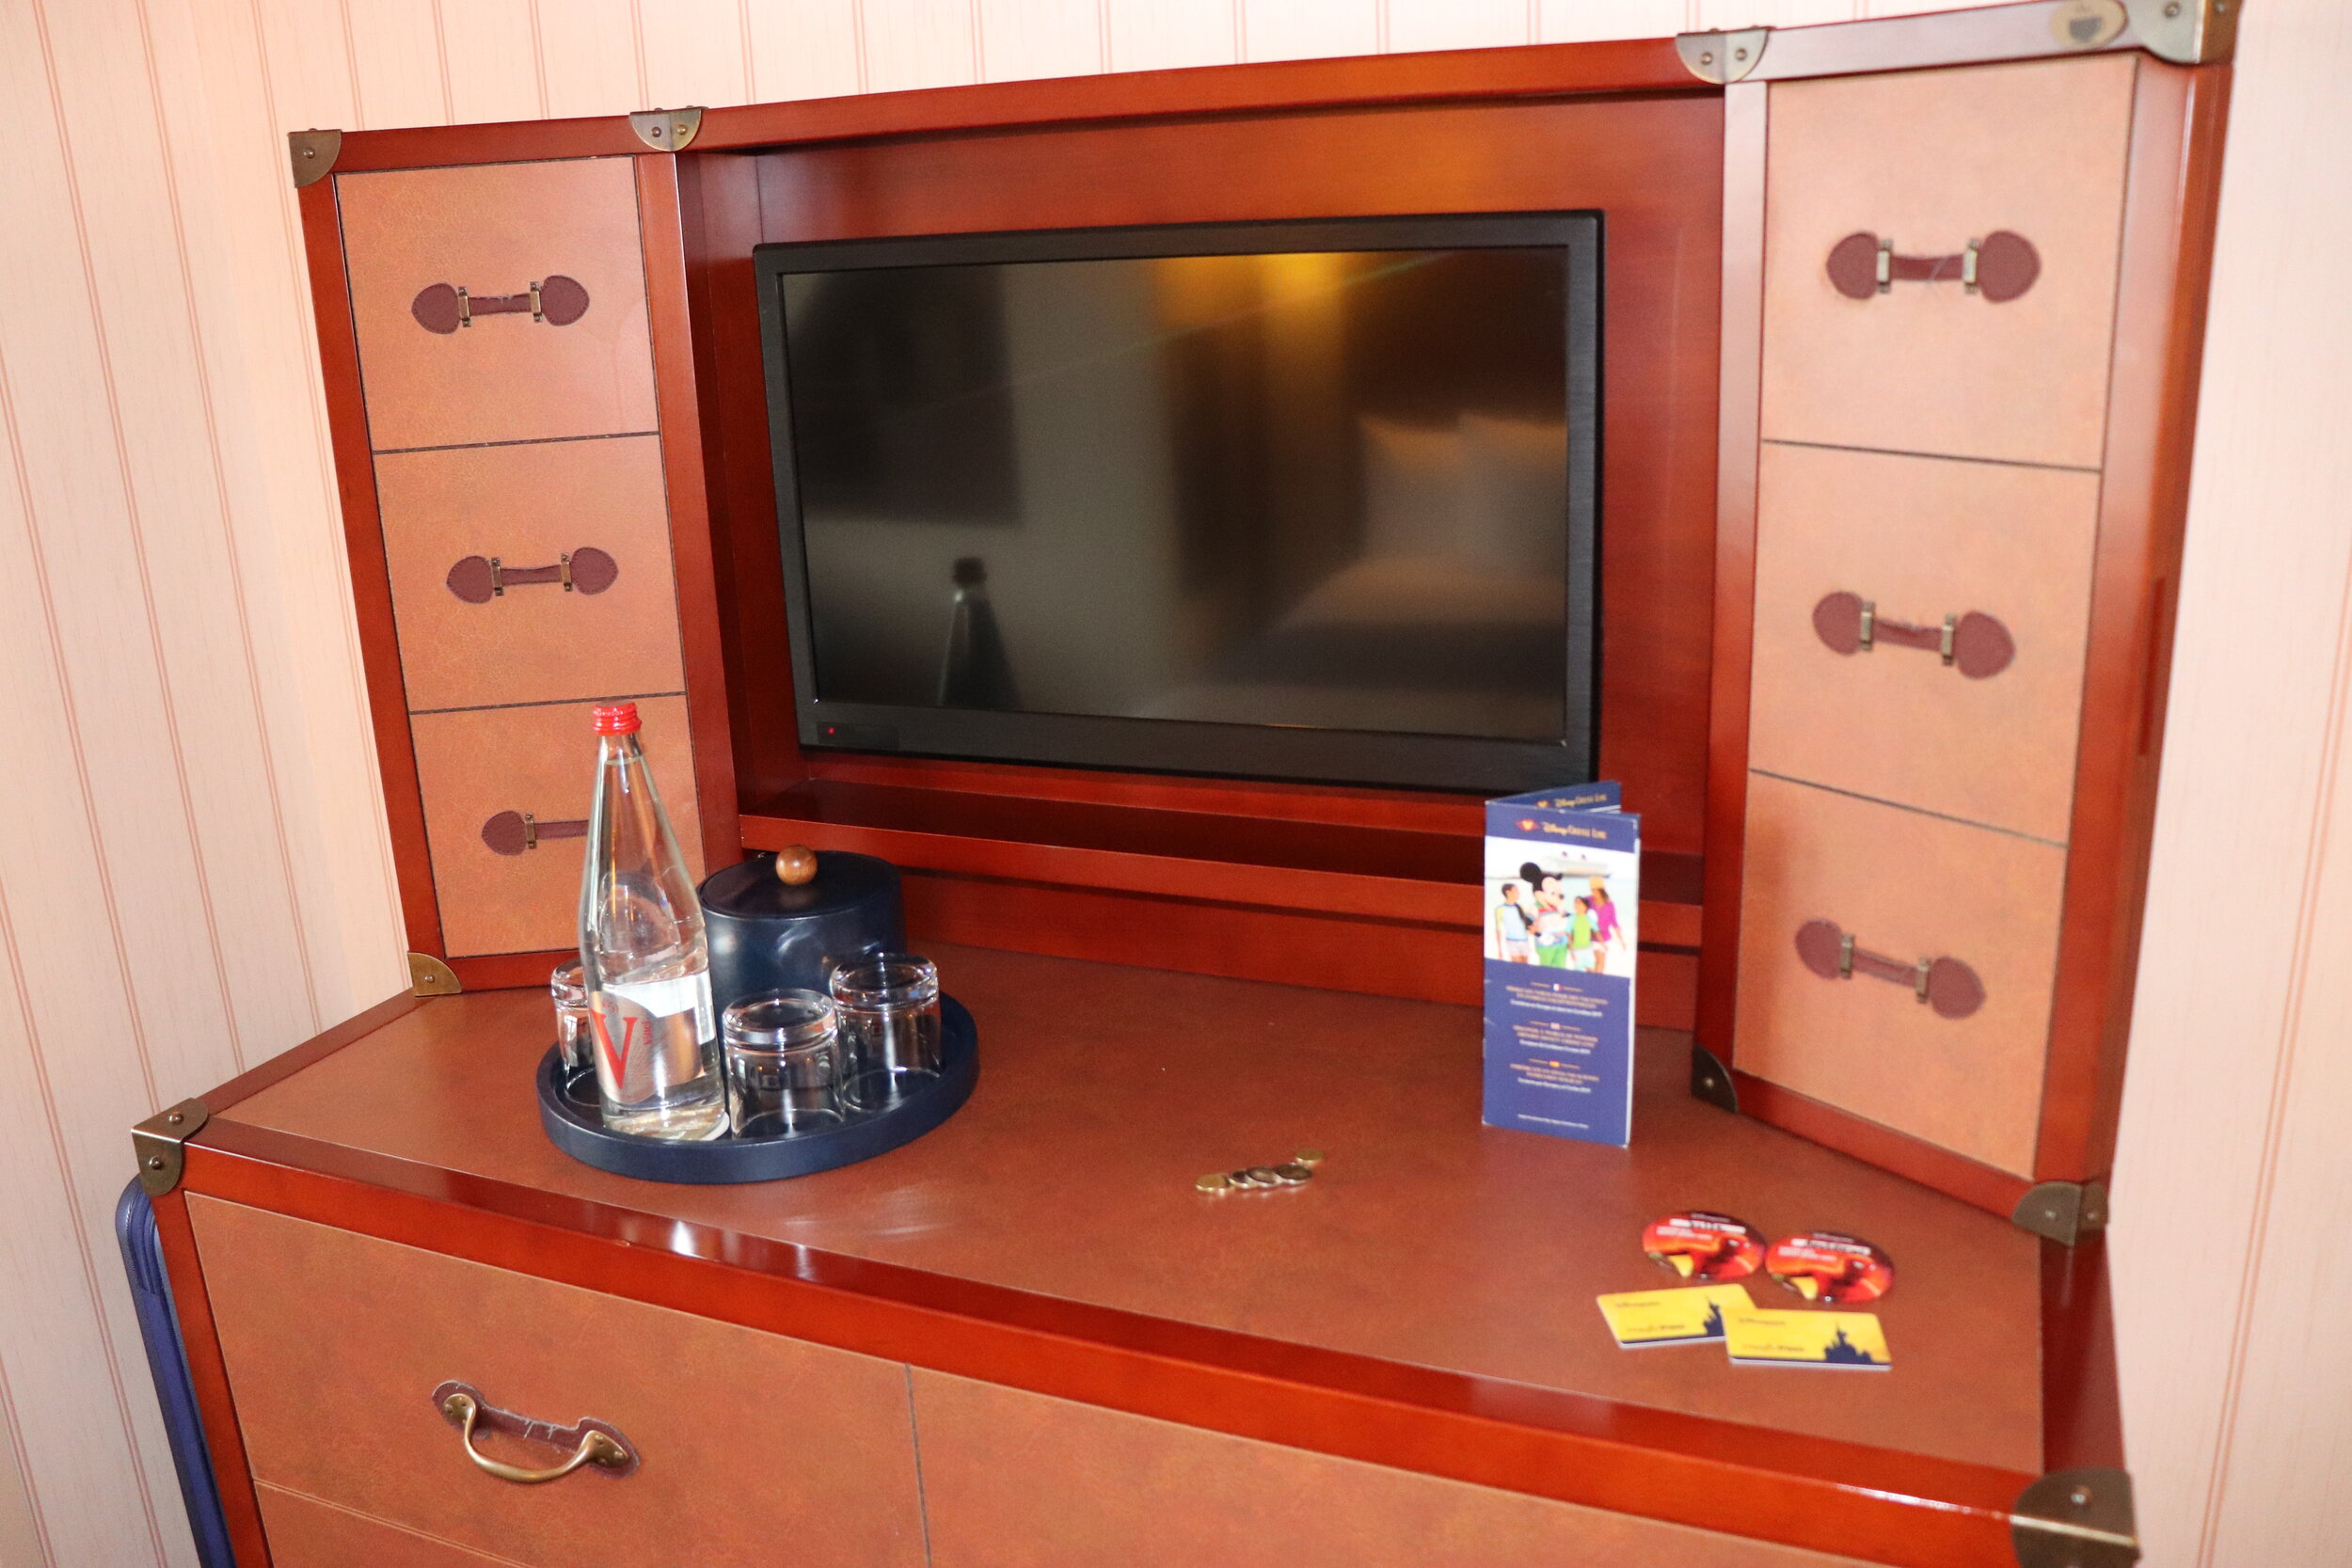 The dresser looked like a steamer trunk and had extra shelves on the sides of the TV.